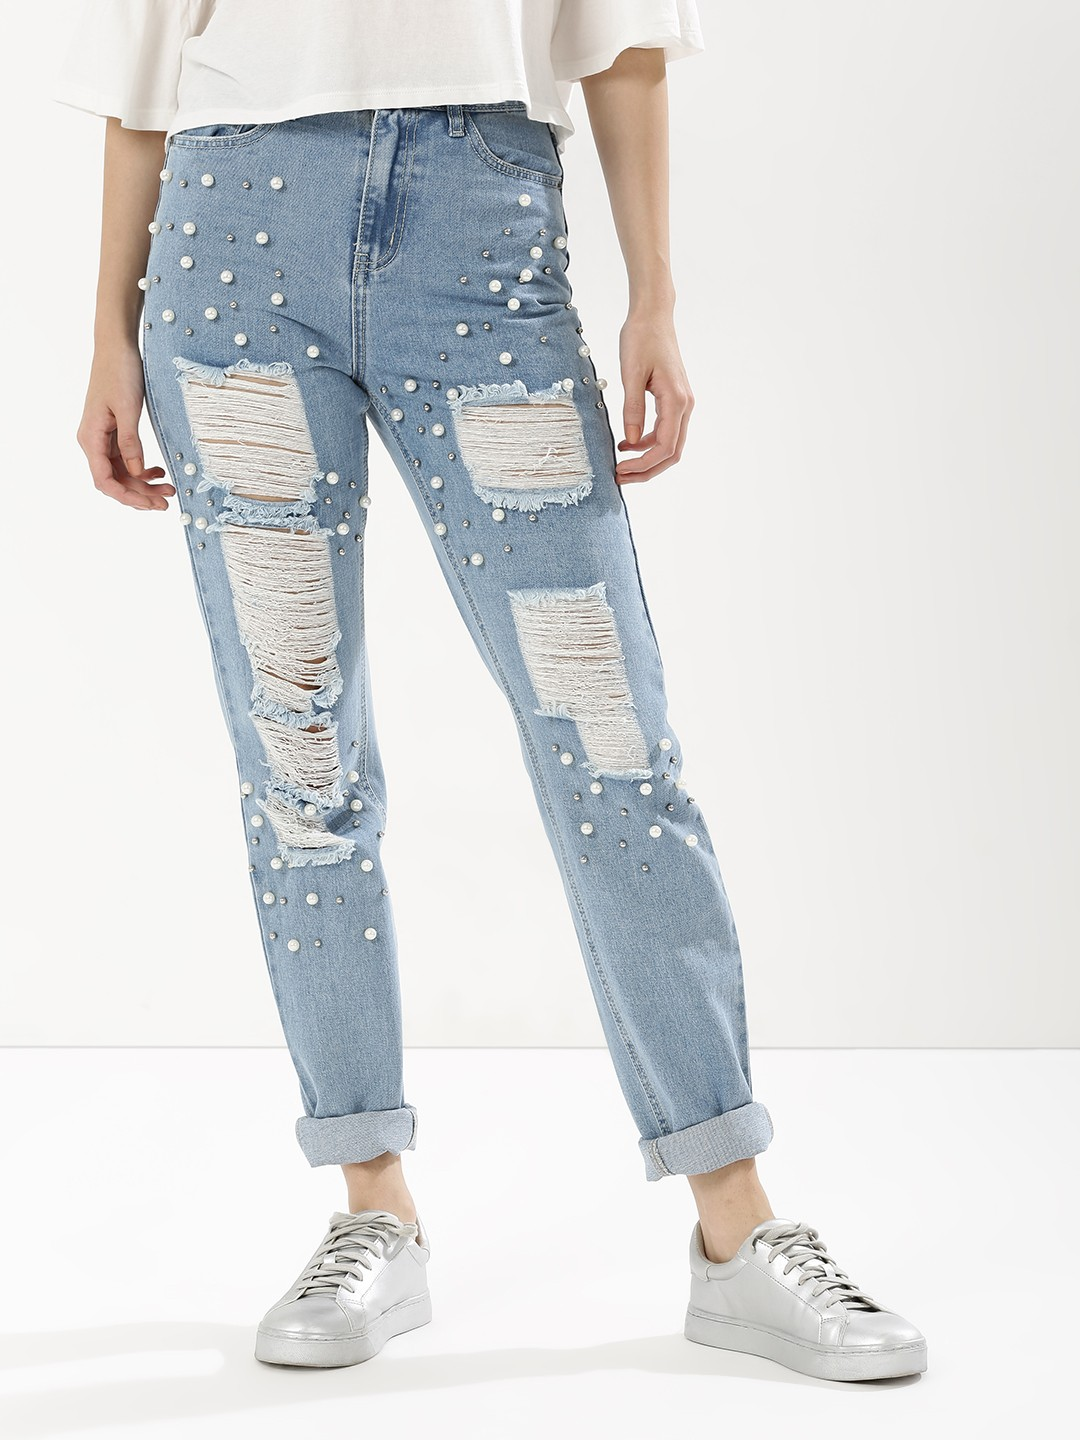 3 jeans makeover - Pearl Embellished Boyfriend Jeans distressed